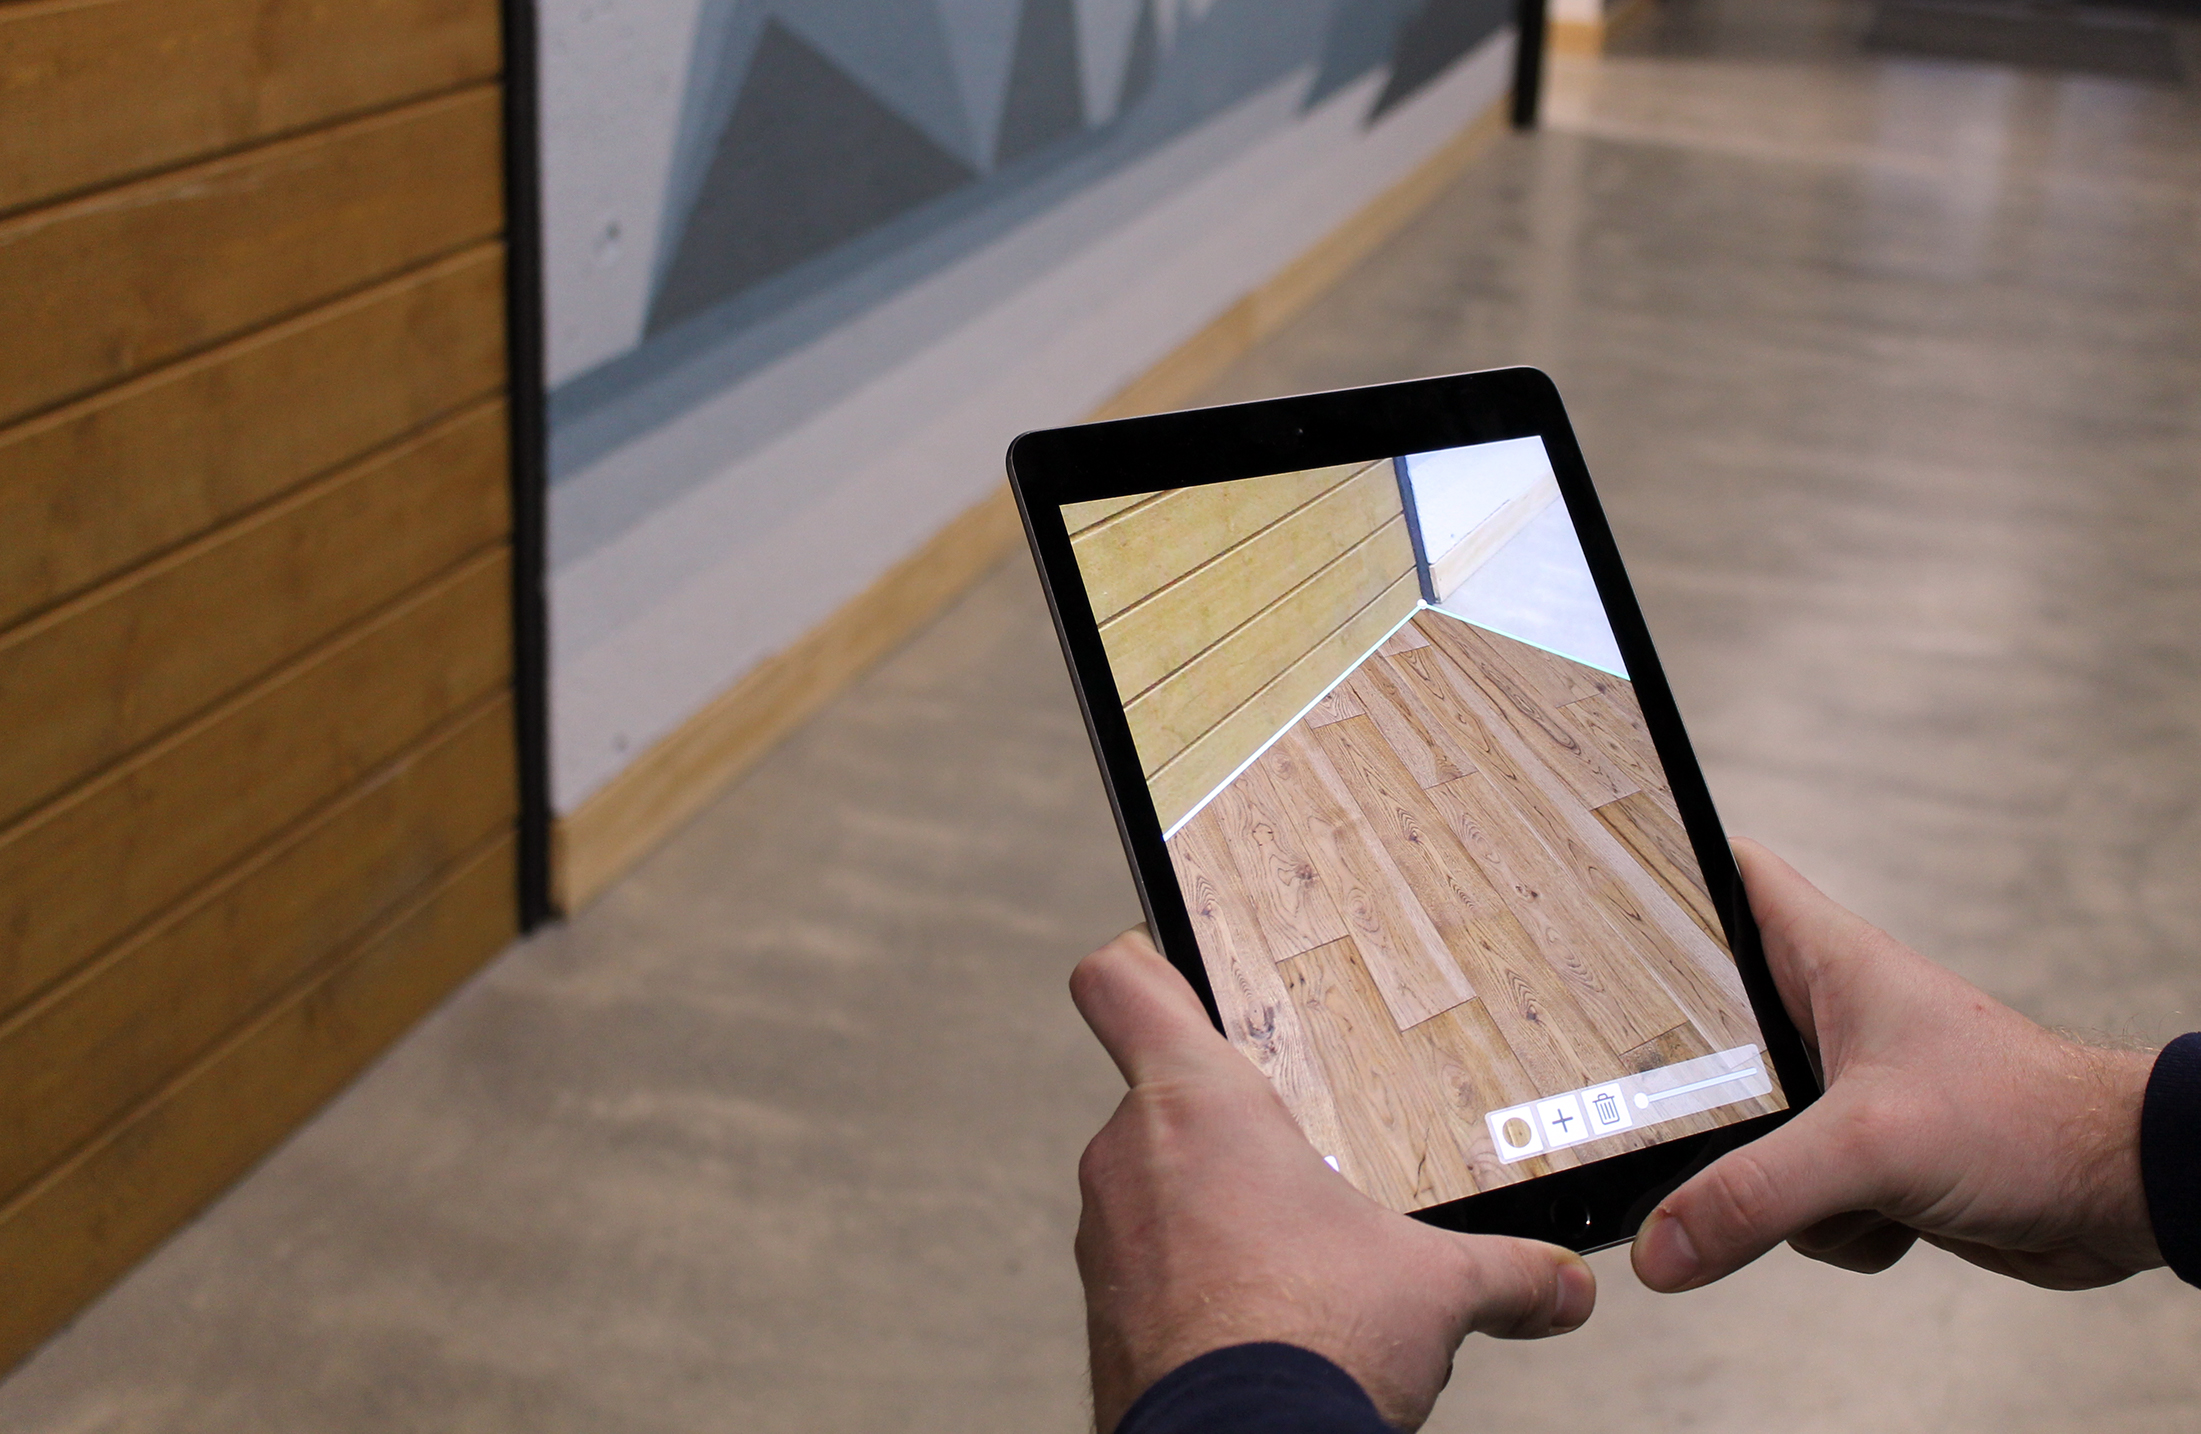 Cavan's Monaghan Lumber Specialties Becomes One of the First Building Material Suppliers in Canada to Embrace Augmented Reality Releasing New Mobile App With Local Startup Kavtek